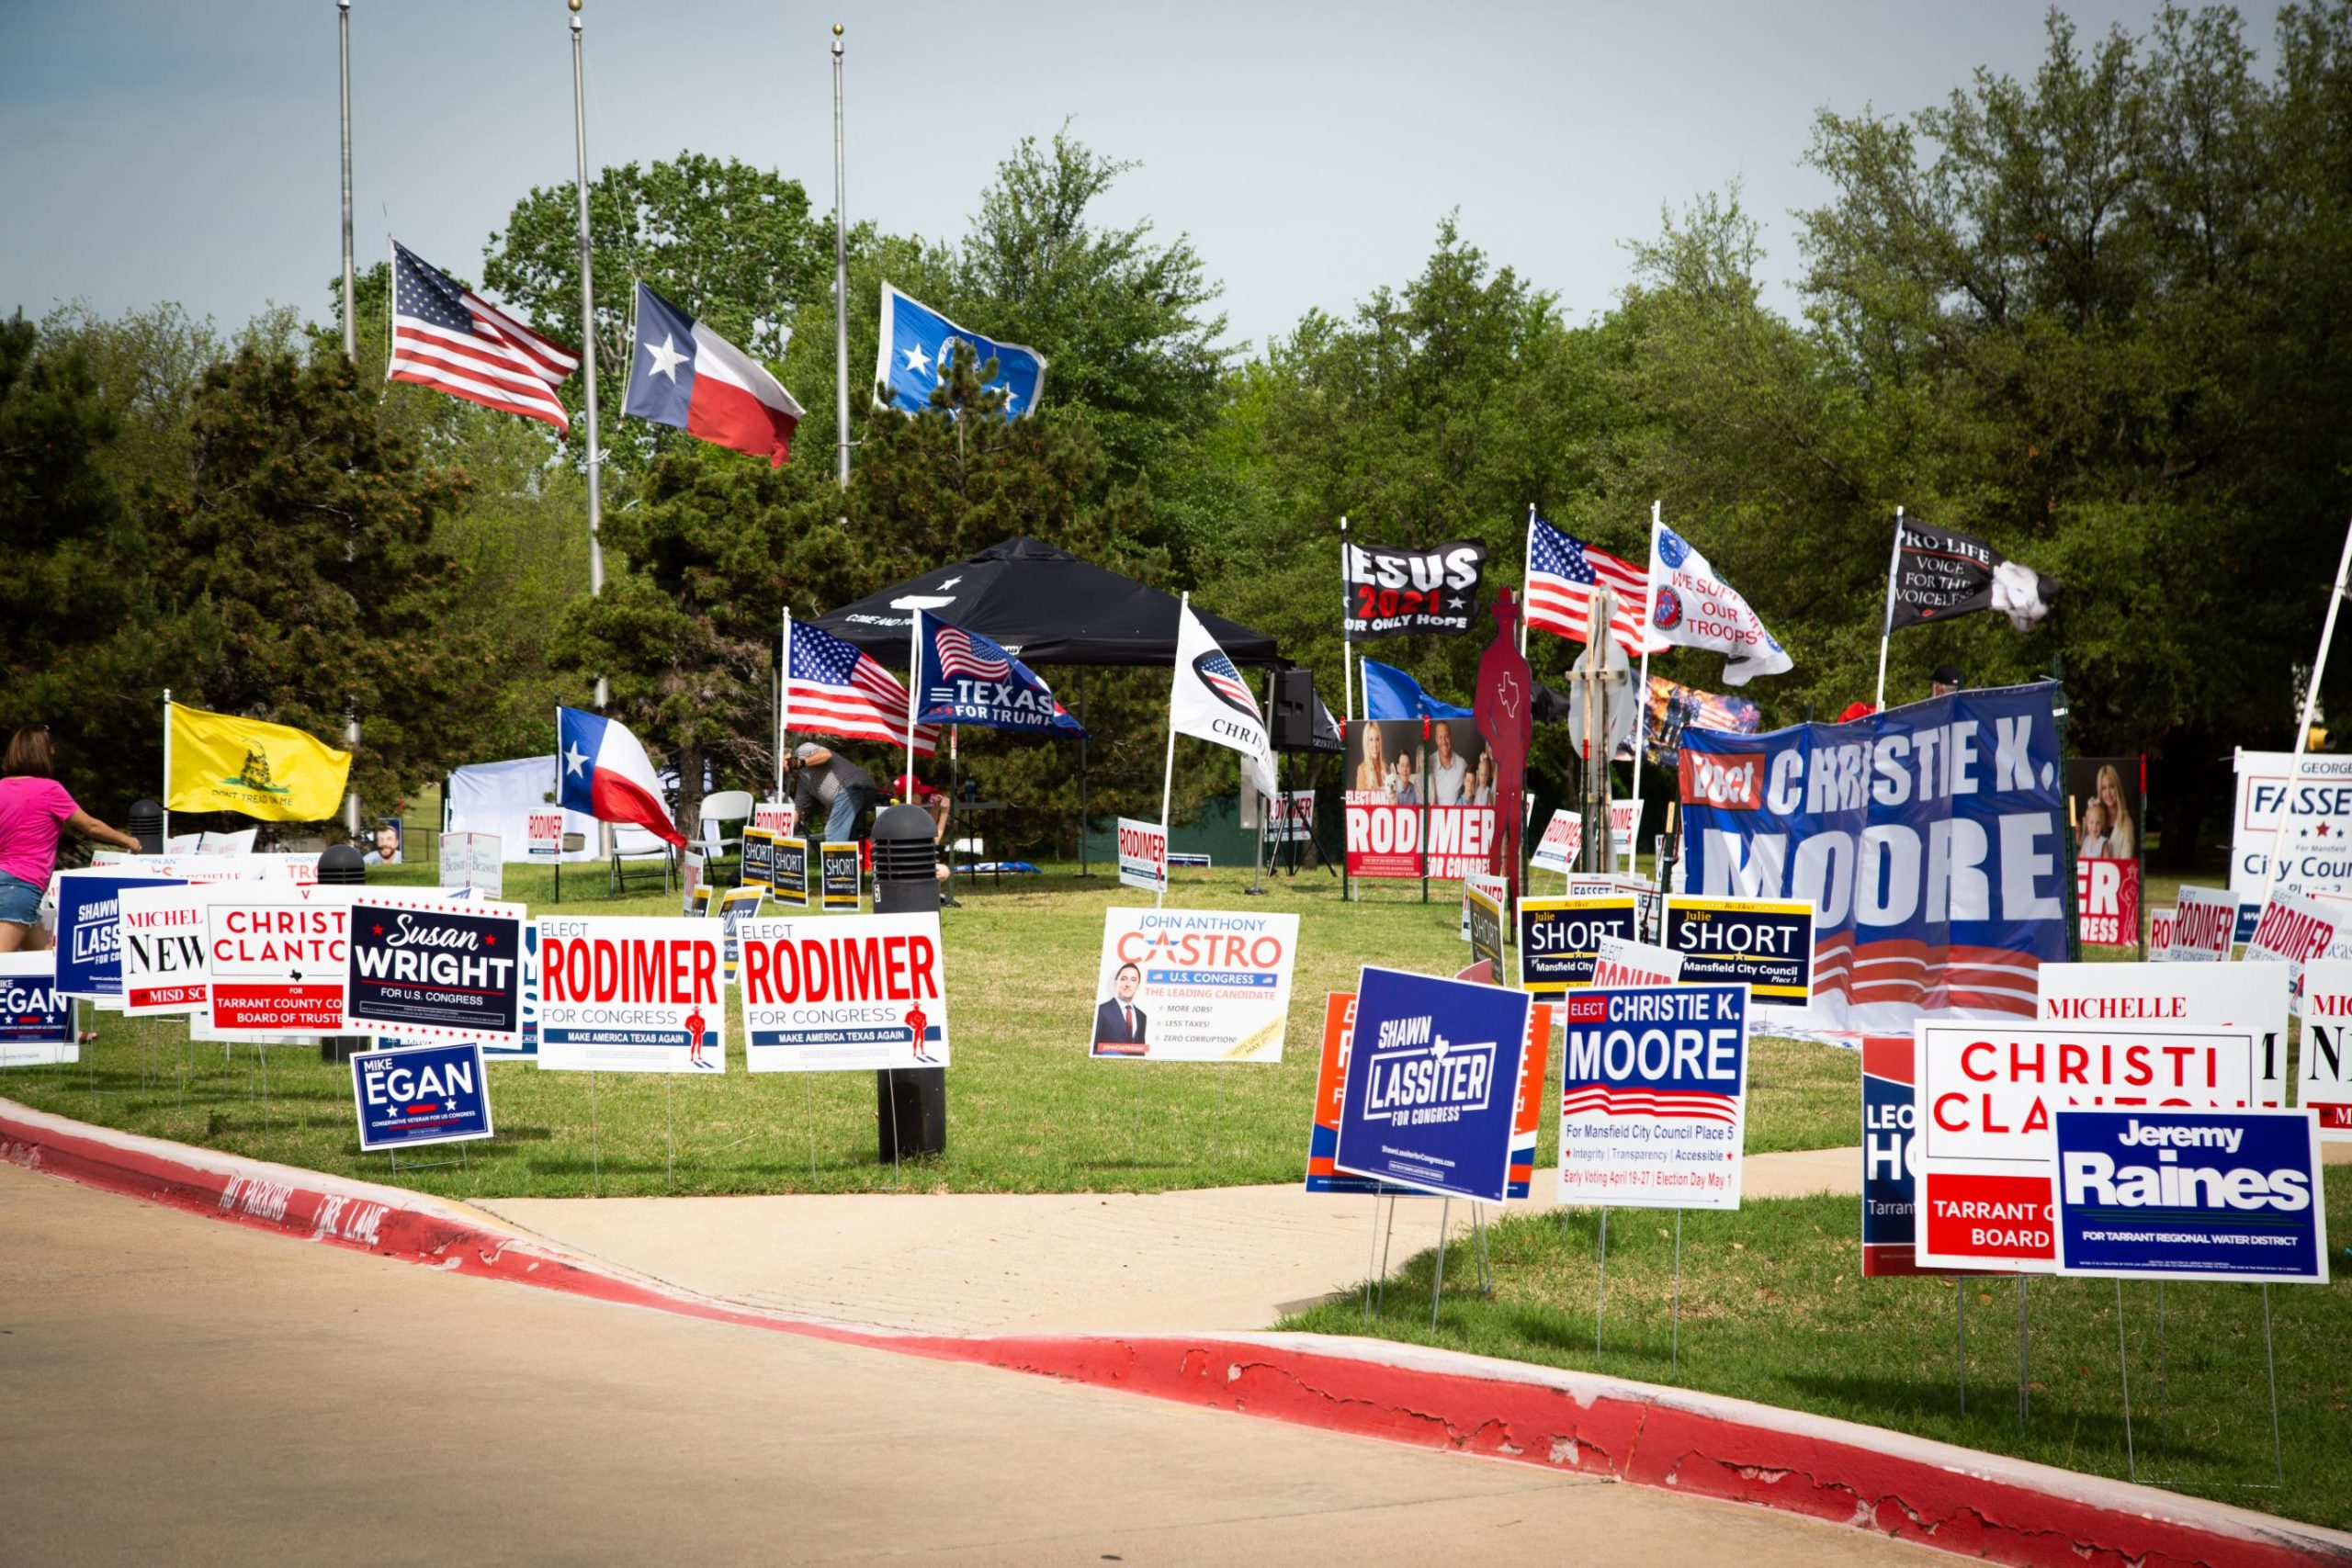 Susan Wright's sign sits amidst a flurry of candidate signs for Texas' sixth district congressional race.